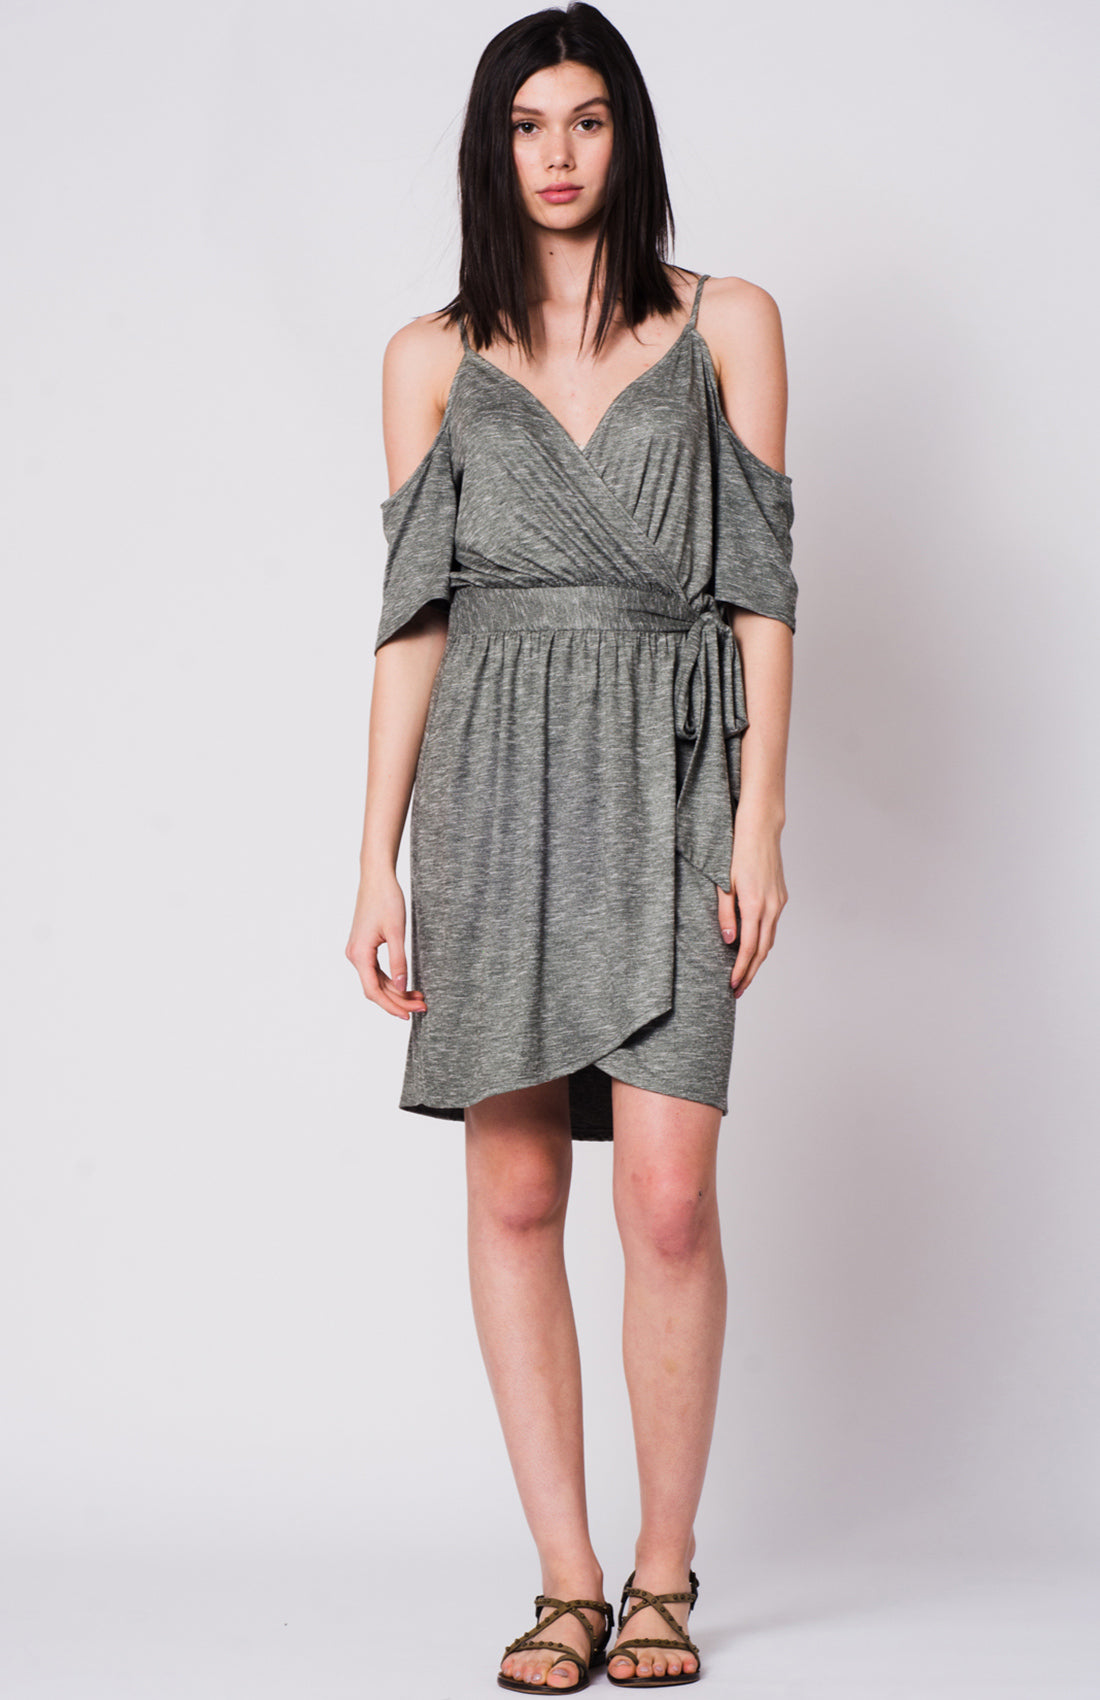 Pisa Suede Dress